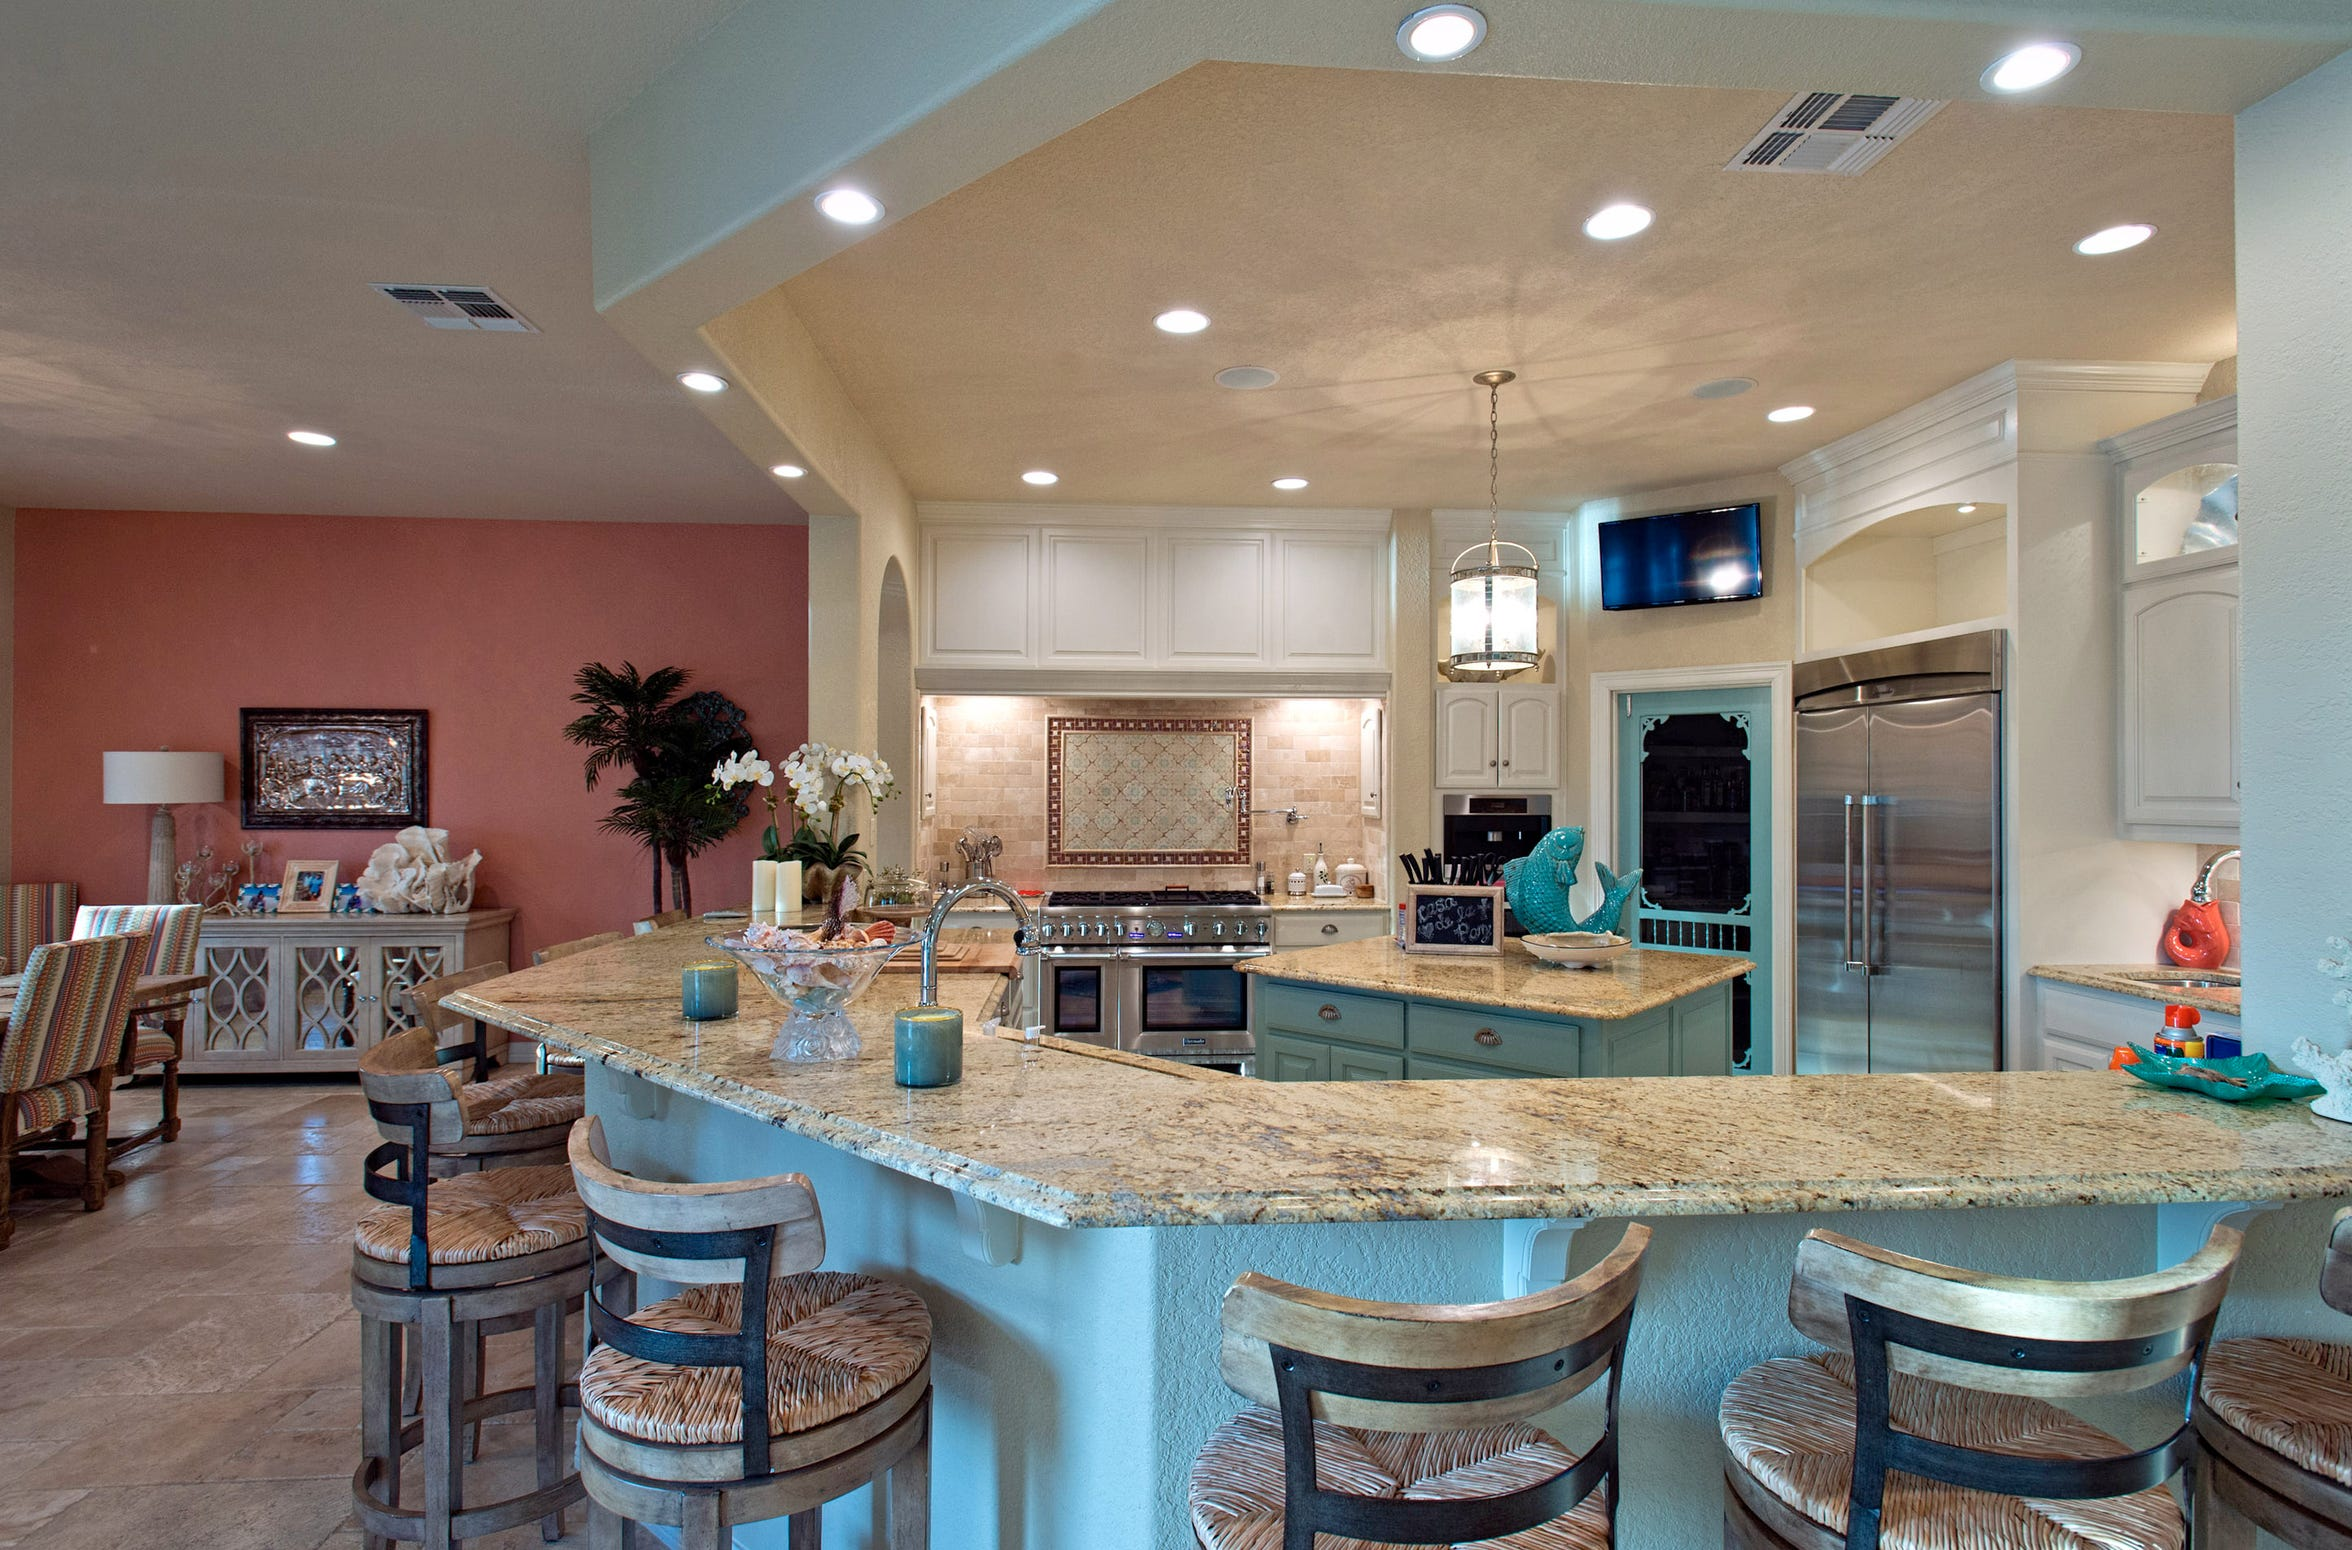 The large and open gourmet kitchen includes many must have features, such as Thermador stainless steal appliances, a commercial style gas stone, subzero refrigerator, ice maker, wine chiller and a Miele built-in coffee maker